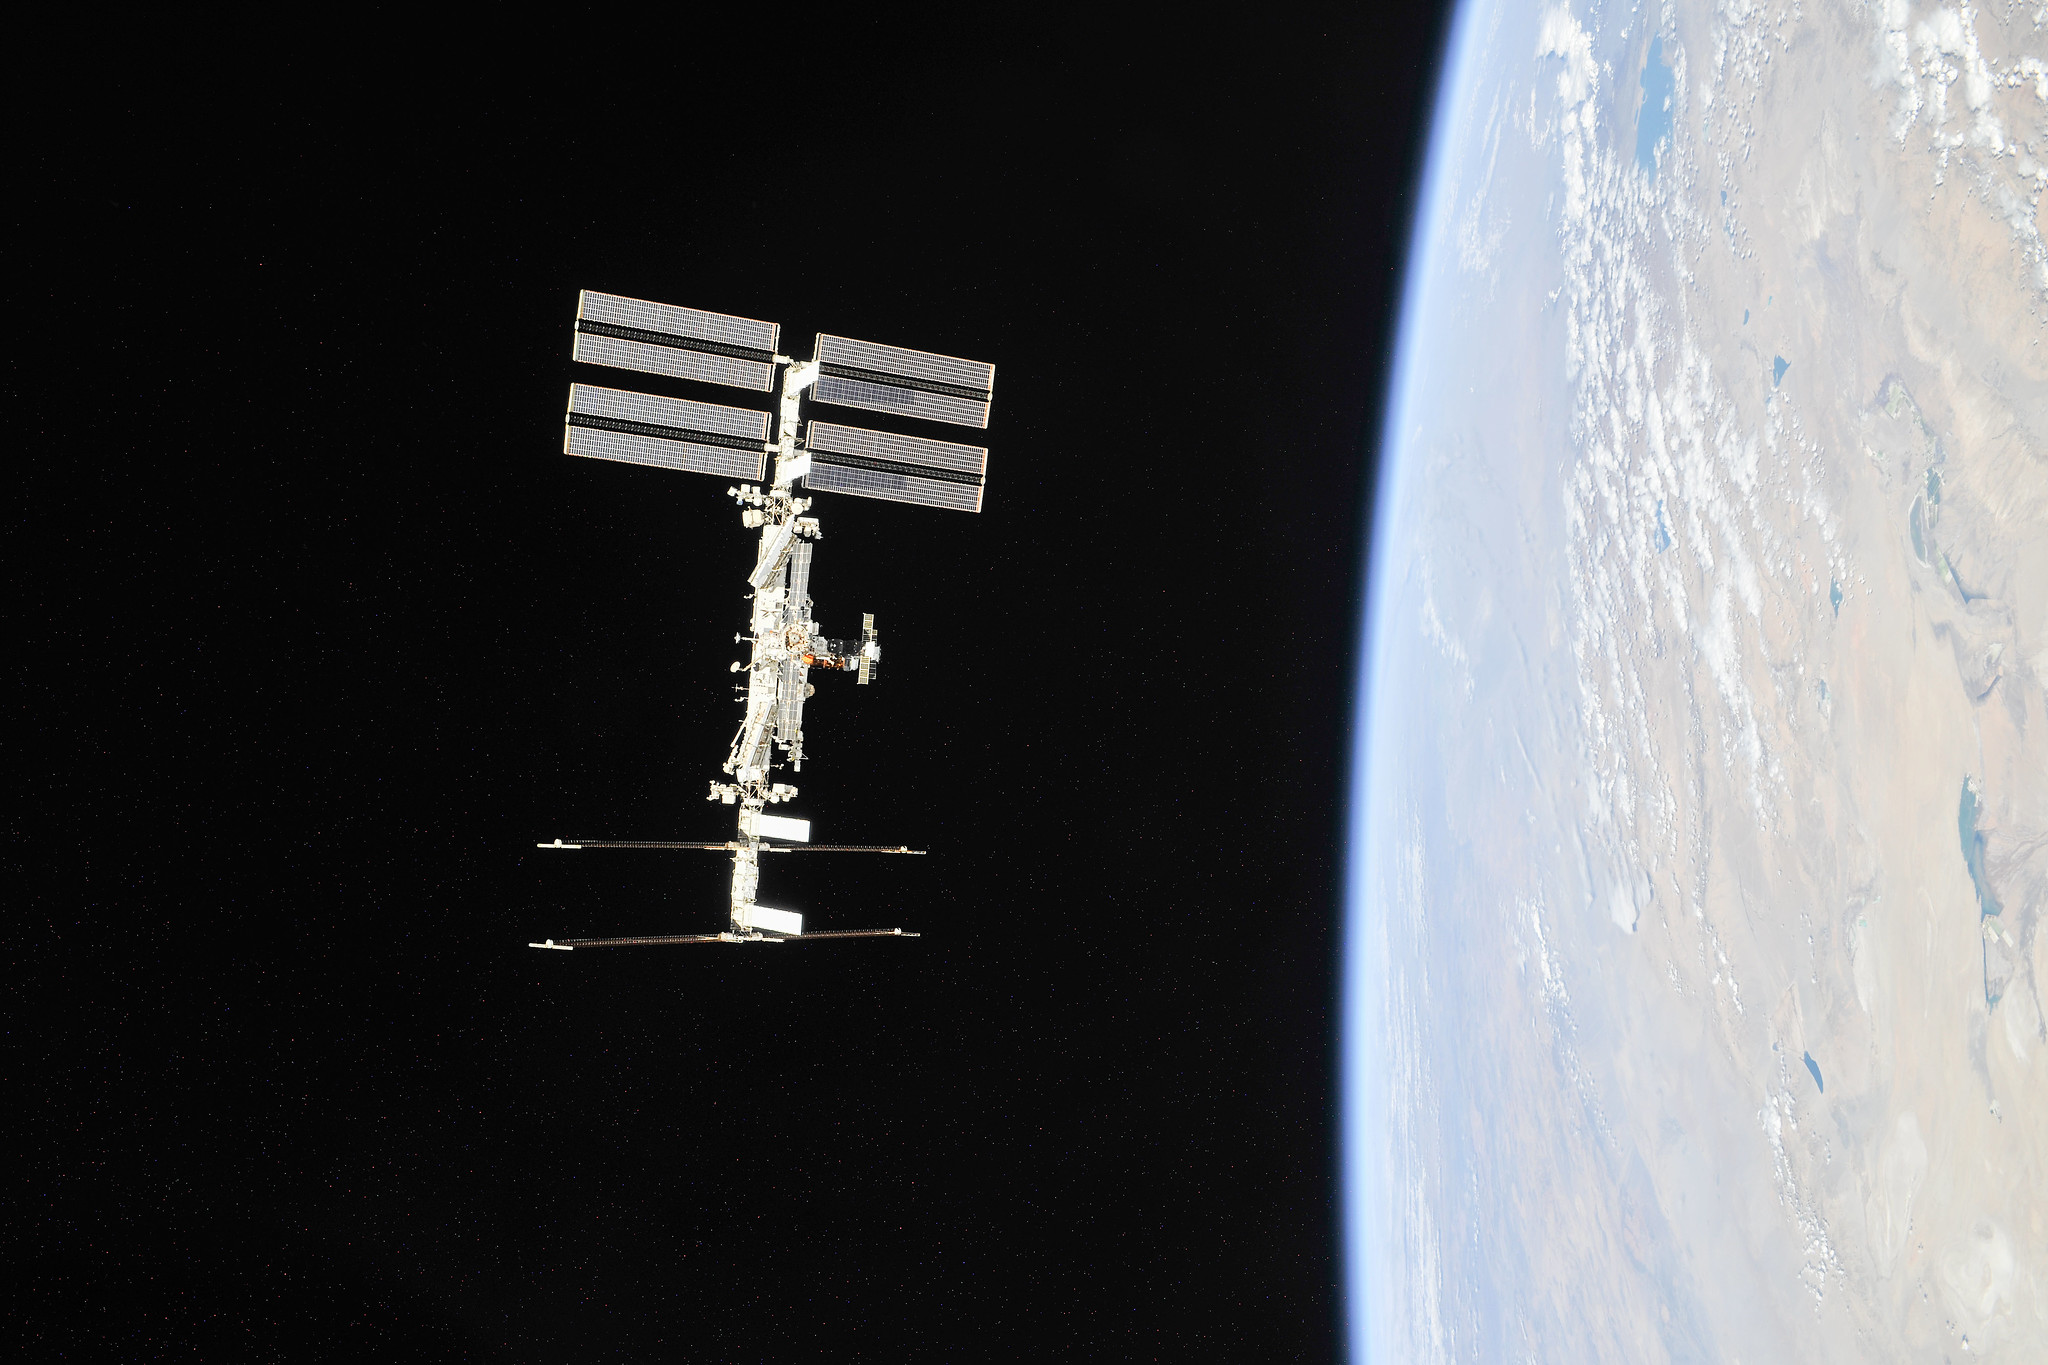 NASA Approves Axiom for 1st Private Astronaut Mission to Visit International Space Station